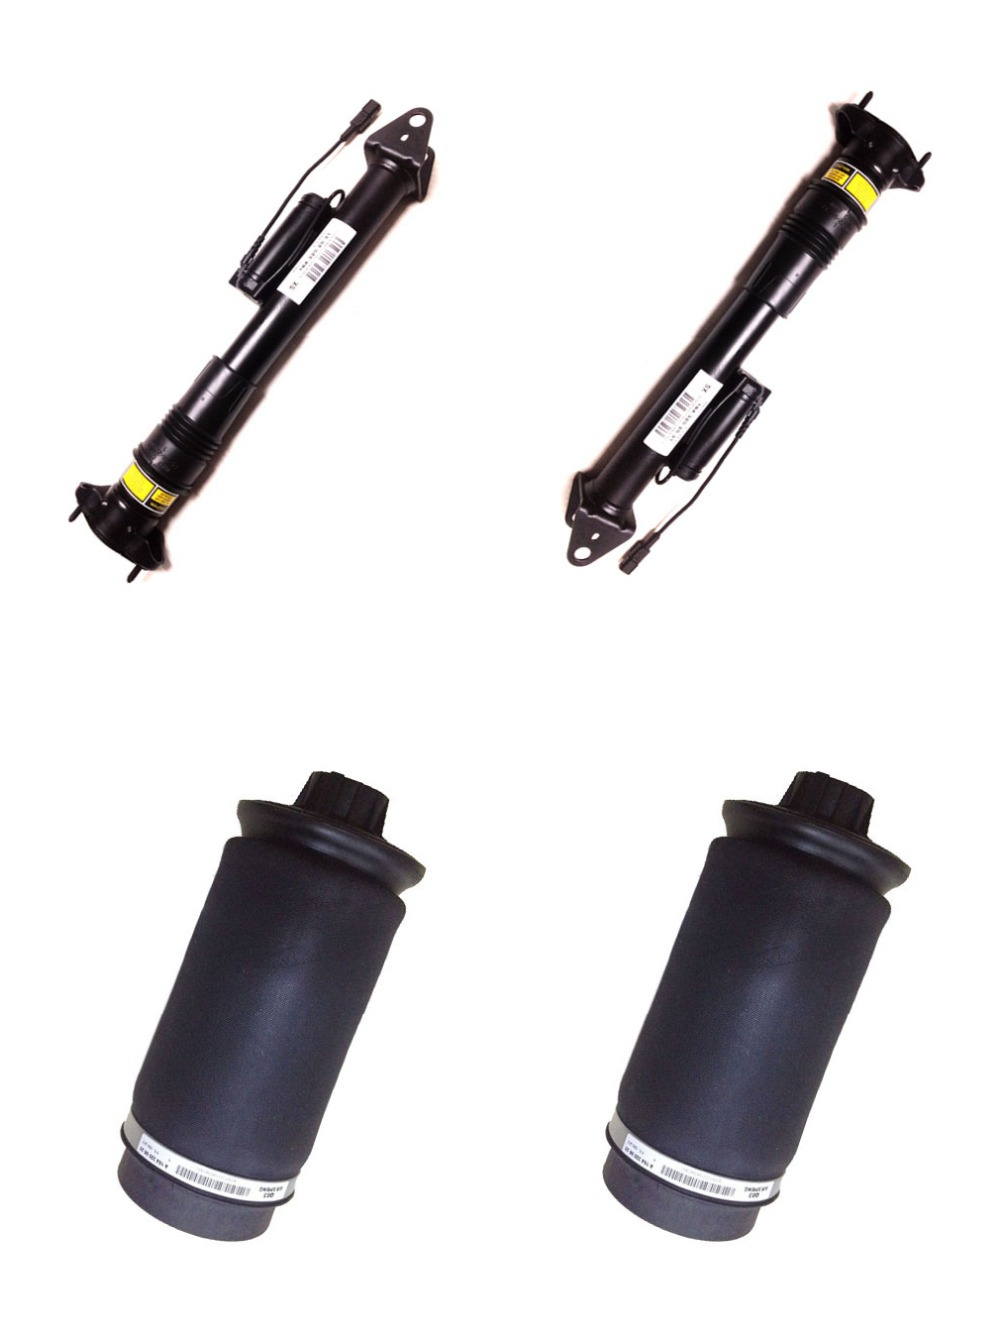 Rear Air Suspension 2pcs Shock Absorber with ADS and 2pcs air spring bags for Mercedes benz GL Class X164 / Ml Class W164 free shipping new mercedes gl w164 x164 amg rear air ride suspension kit air strut air spring air suspension 1643201025